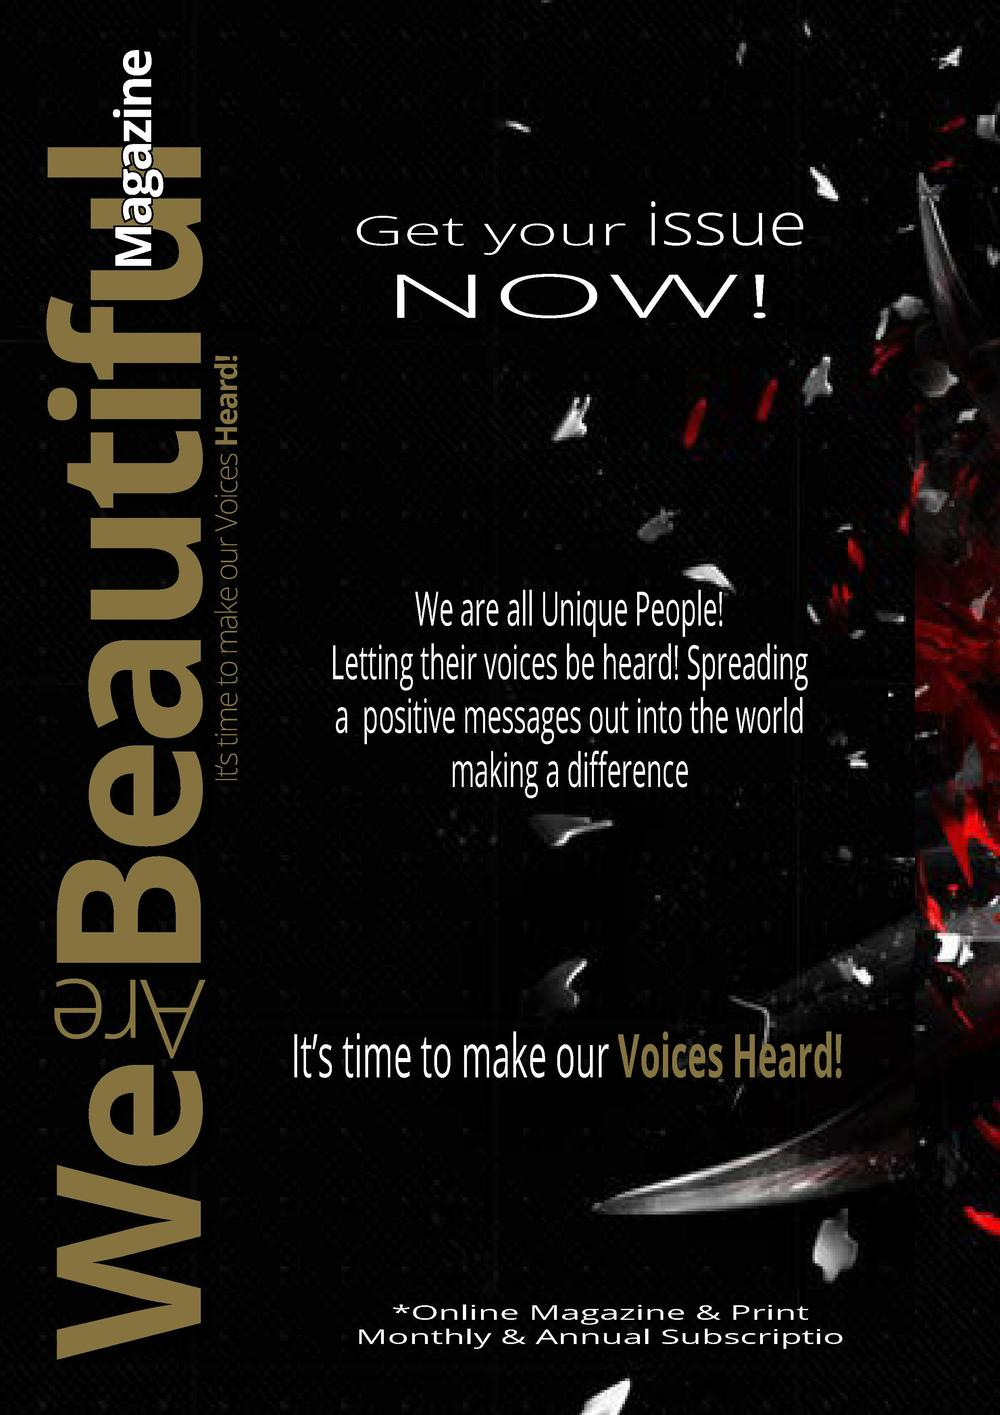 It   s time to make our Voices Heard   We Beautiful  Magazine  issue NOW   Get your  We are all Unique People  Letting the...